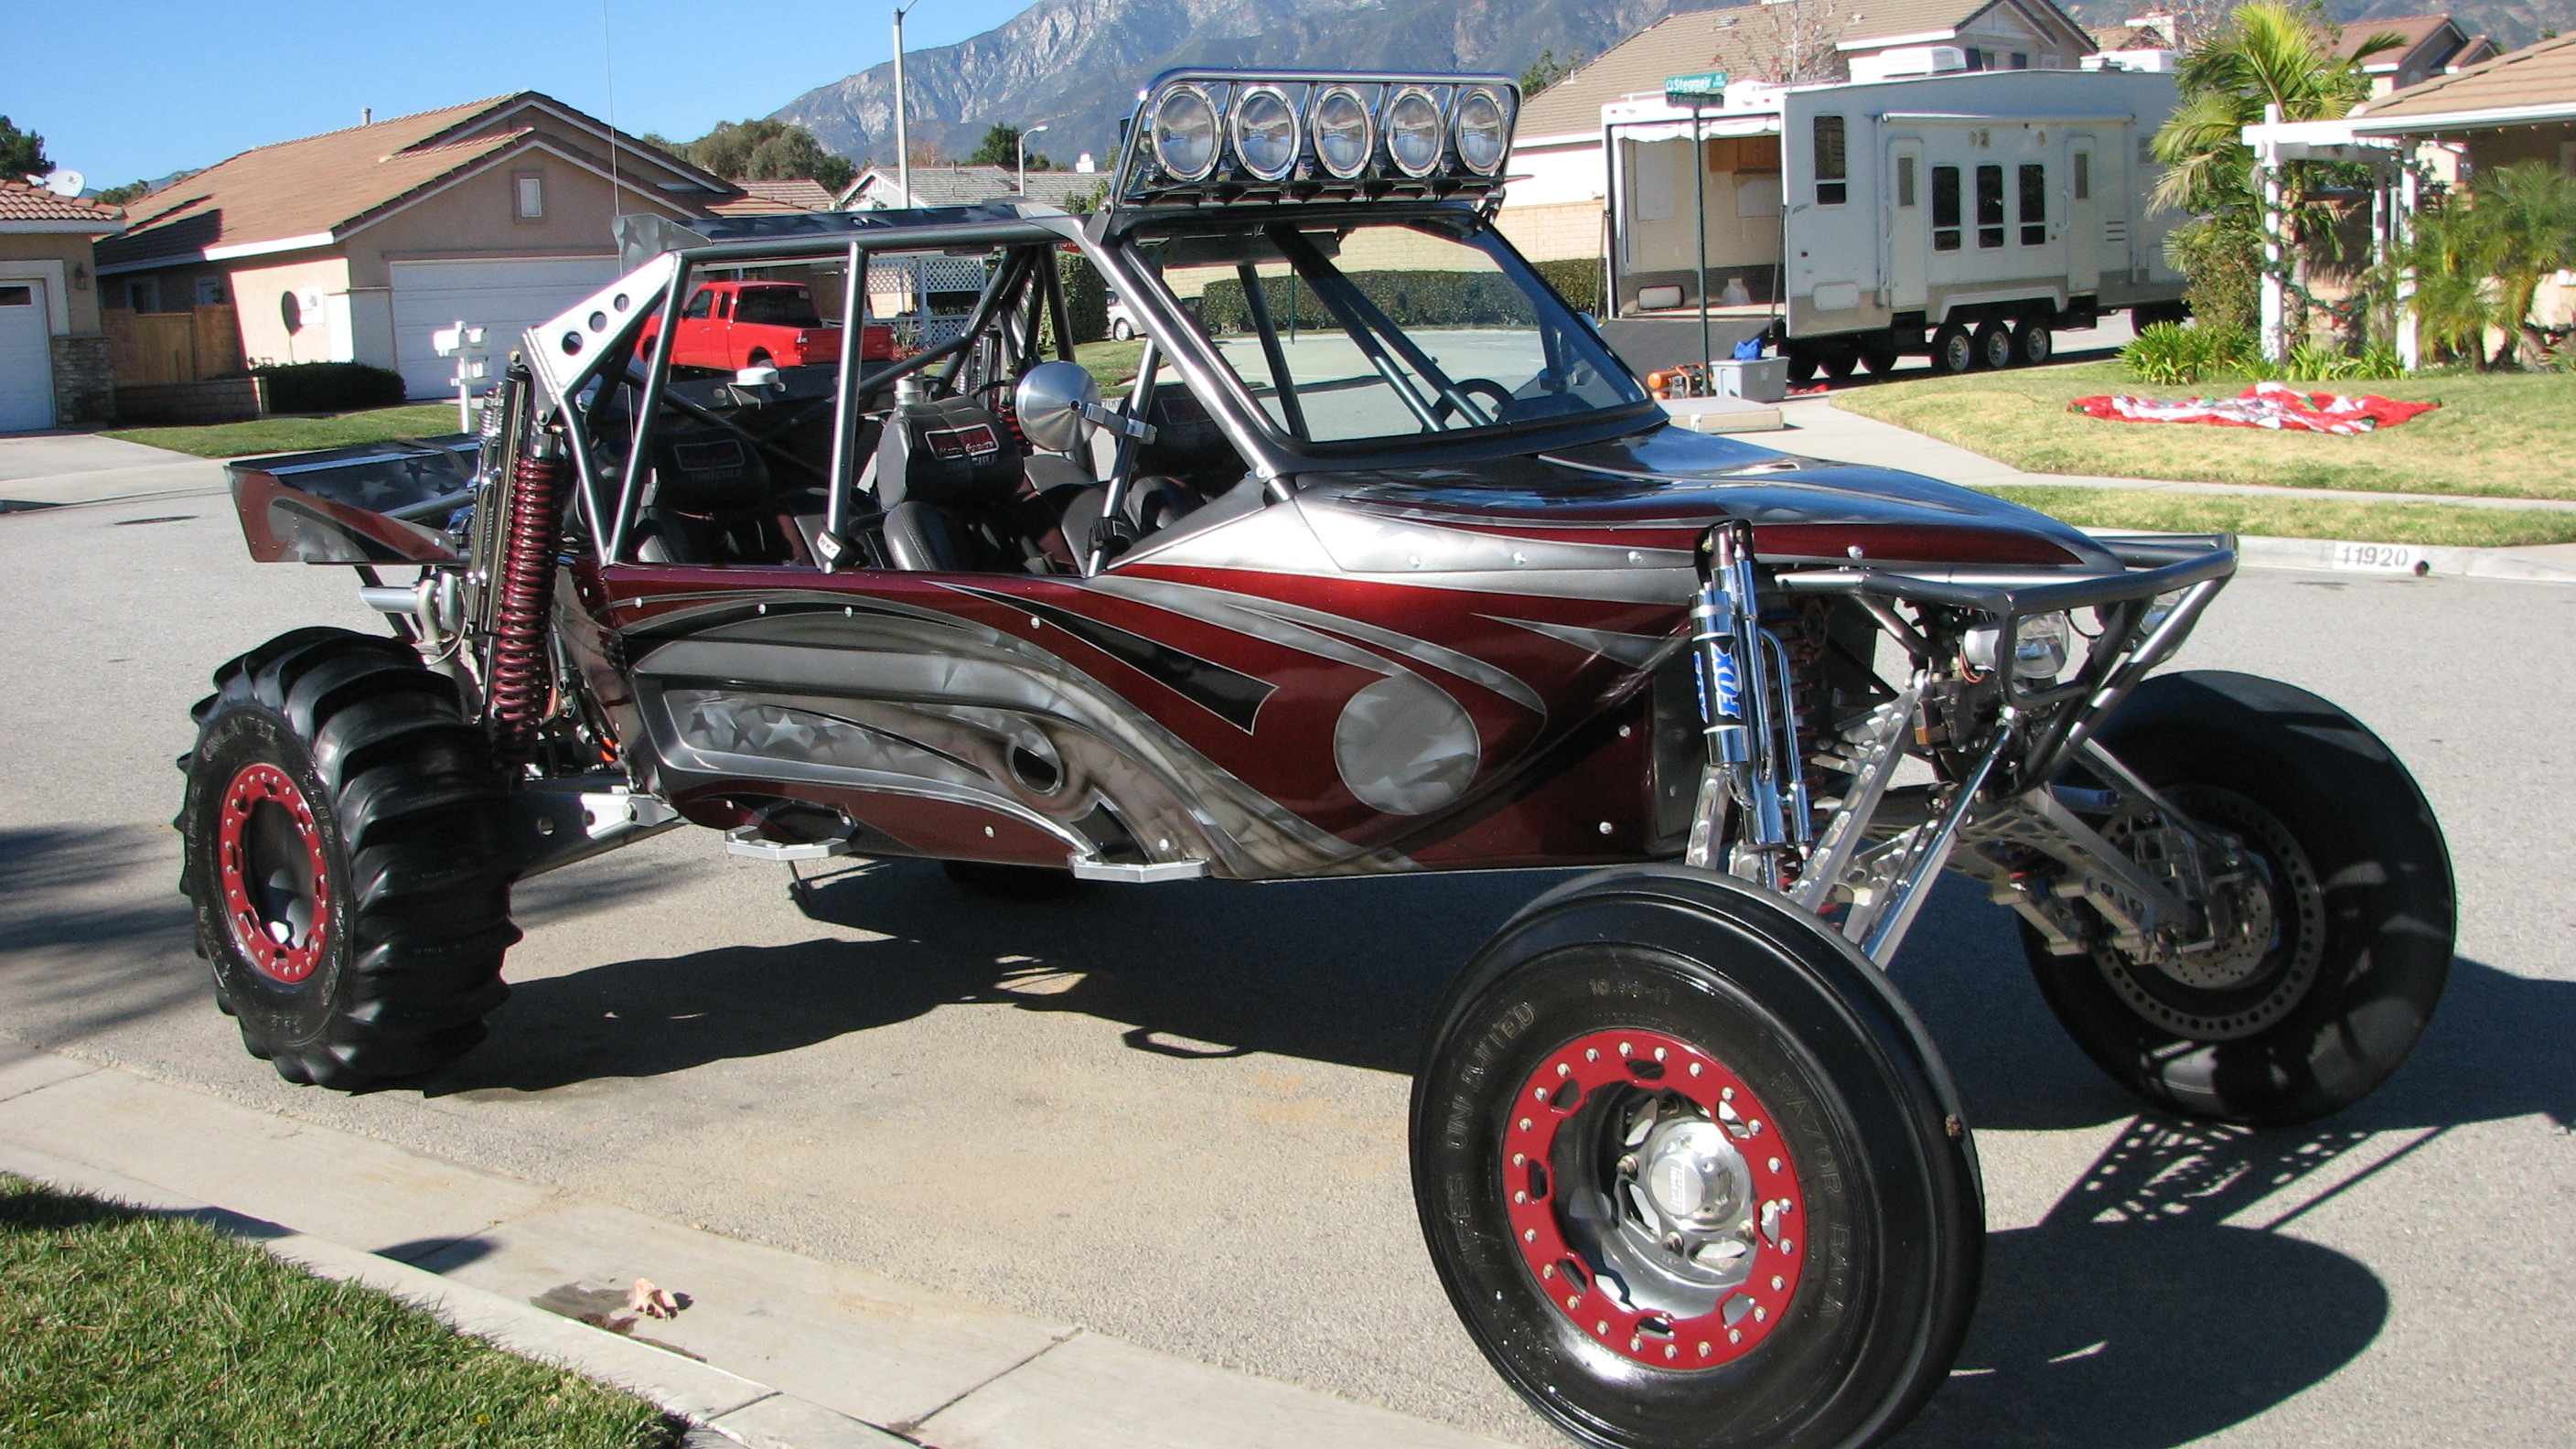 rc dune buggy for sale with Sandrail Dunebuggy Offroad Hot Rod Rods Race Racing Custom G on Dune Buggy RC Car Wave Runner RTR   40 Km Hour 2 Wheel Drive 4 Wheel Suspension together with Epcp 1211 Sema 2012 Custom Vw Beetles besides Nomad as well 66016 Trophy Kart also Traxxas 2.